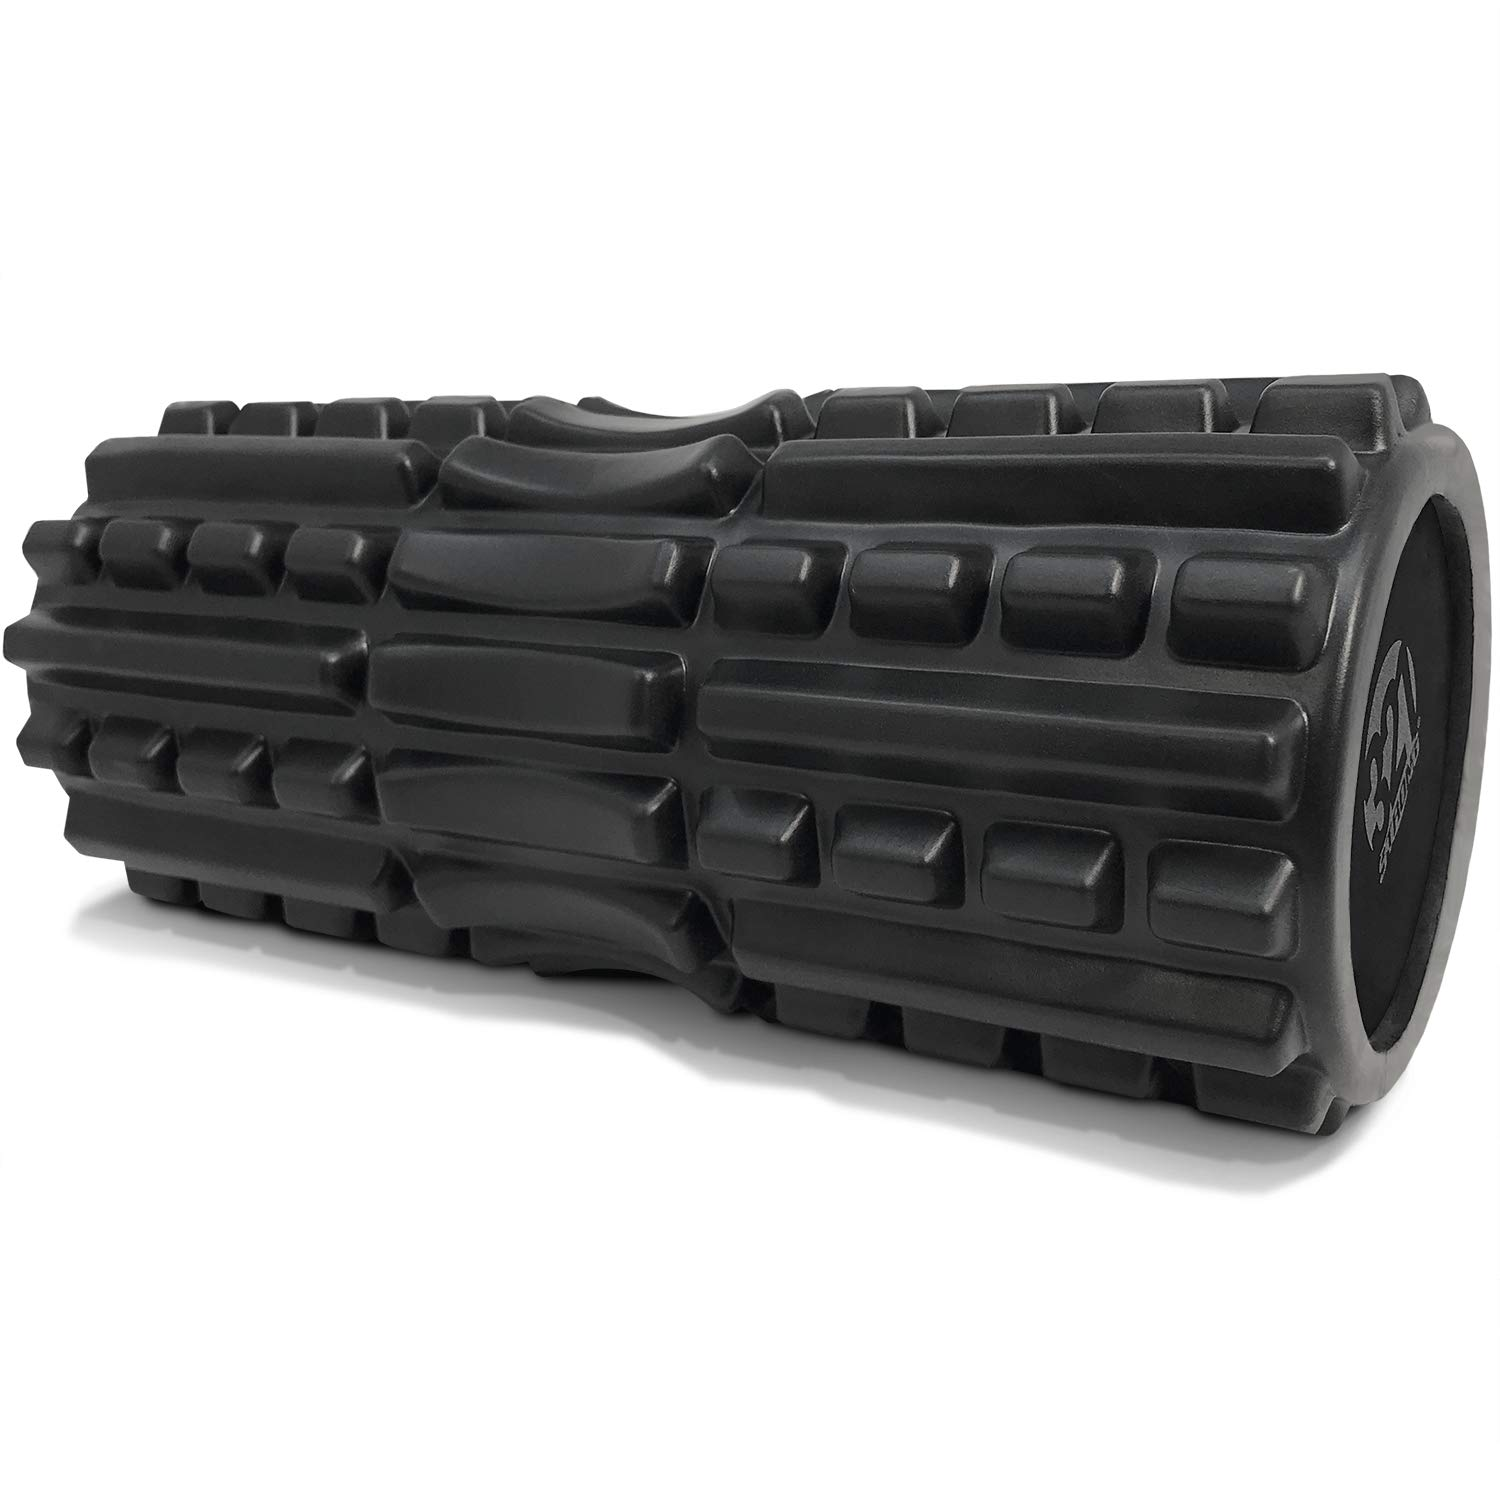 321 STRONG Foam Roller – Extra Firm High Density Deep Tissue Massager with Spinal Channel